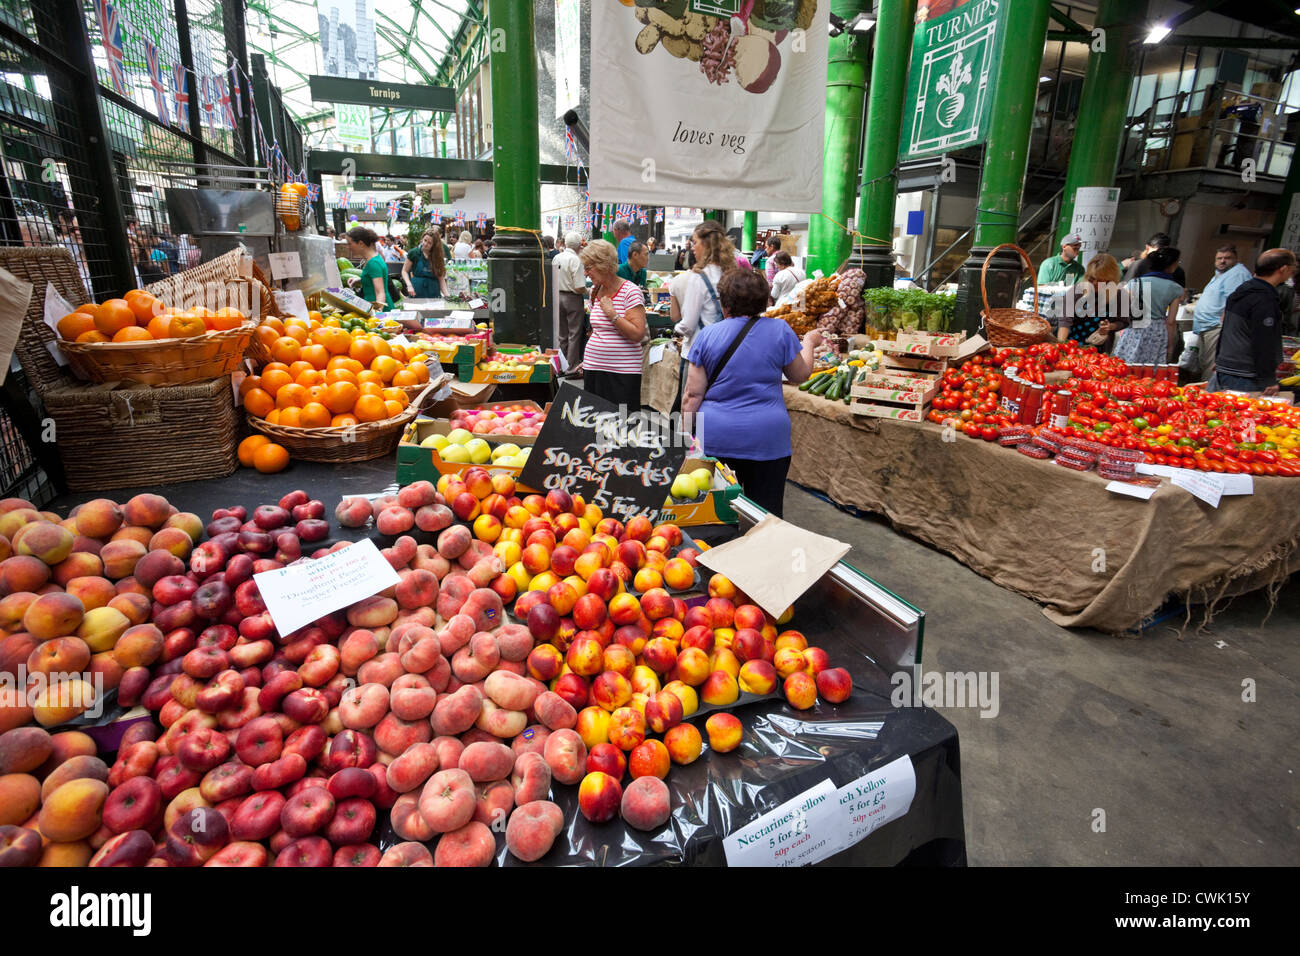 Organic fruit stall, Borough Market, London, England, UK - Stock Image